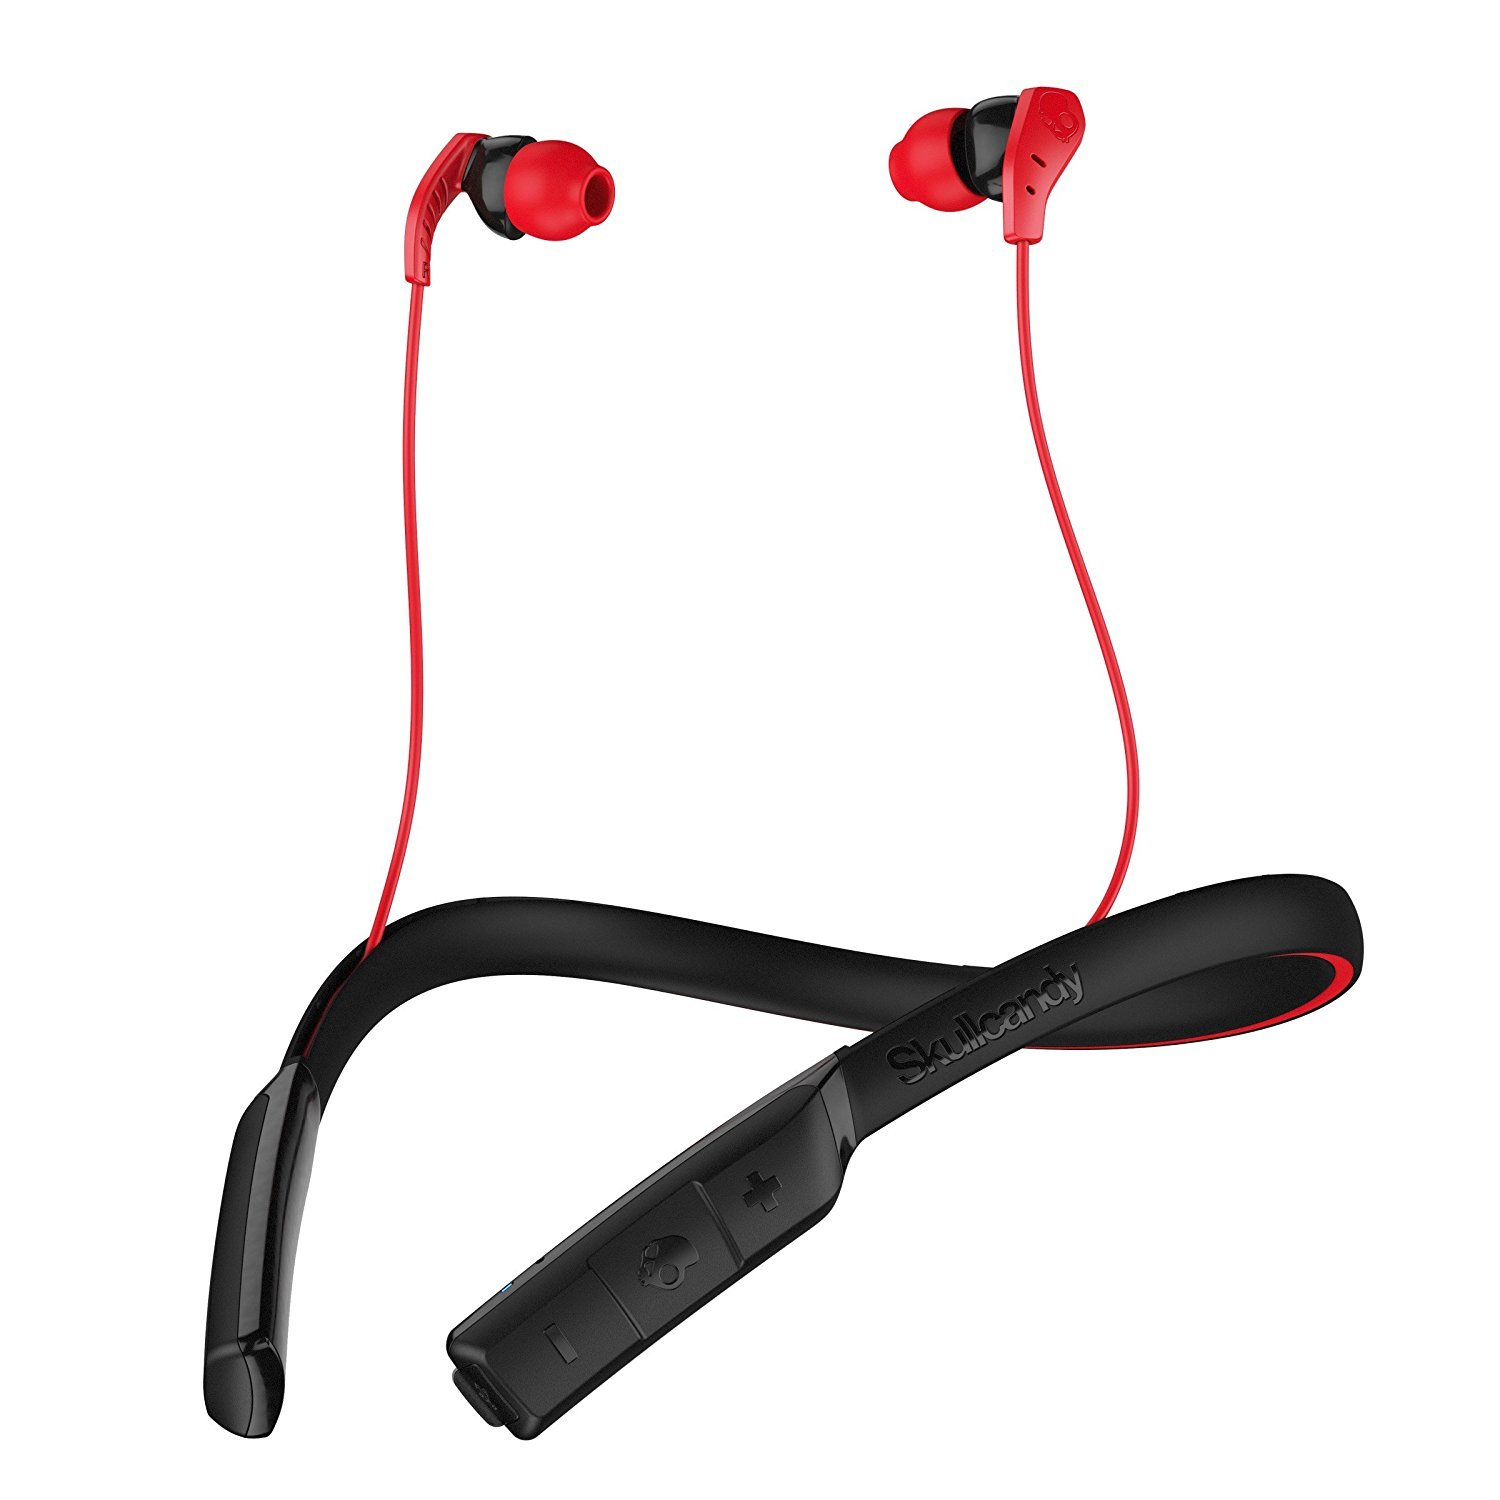 Image For Skullcandy Method<Br>Bluetooth Wireless Earbuds<Br>Red